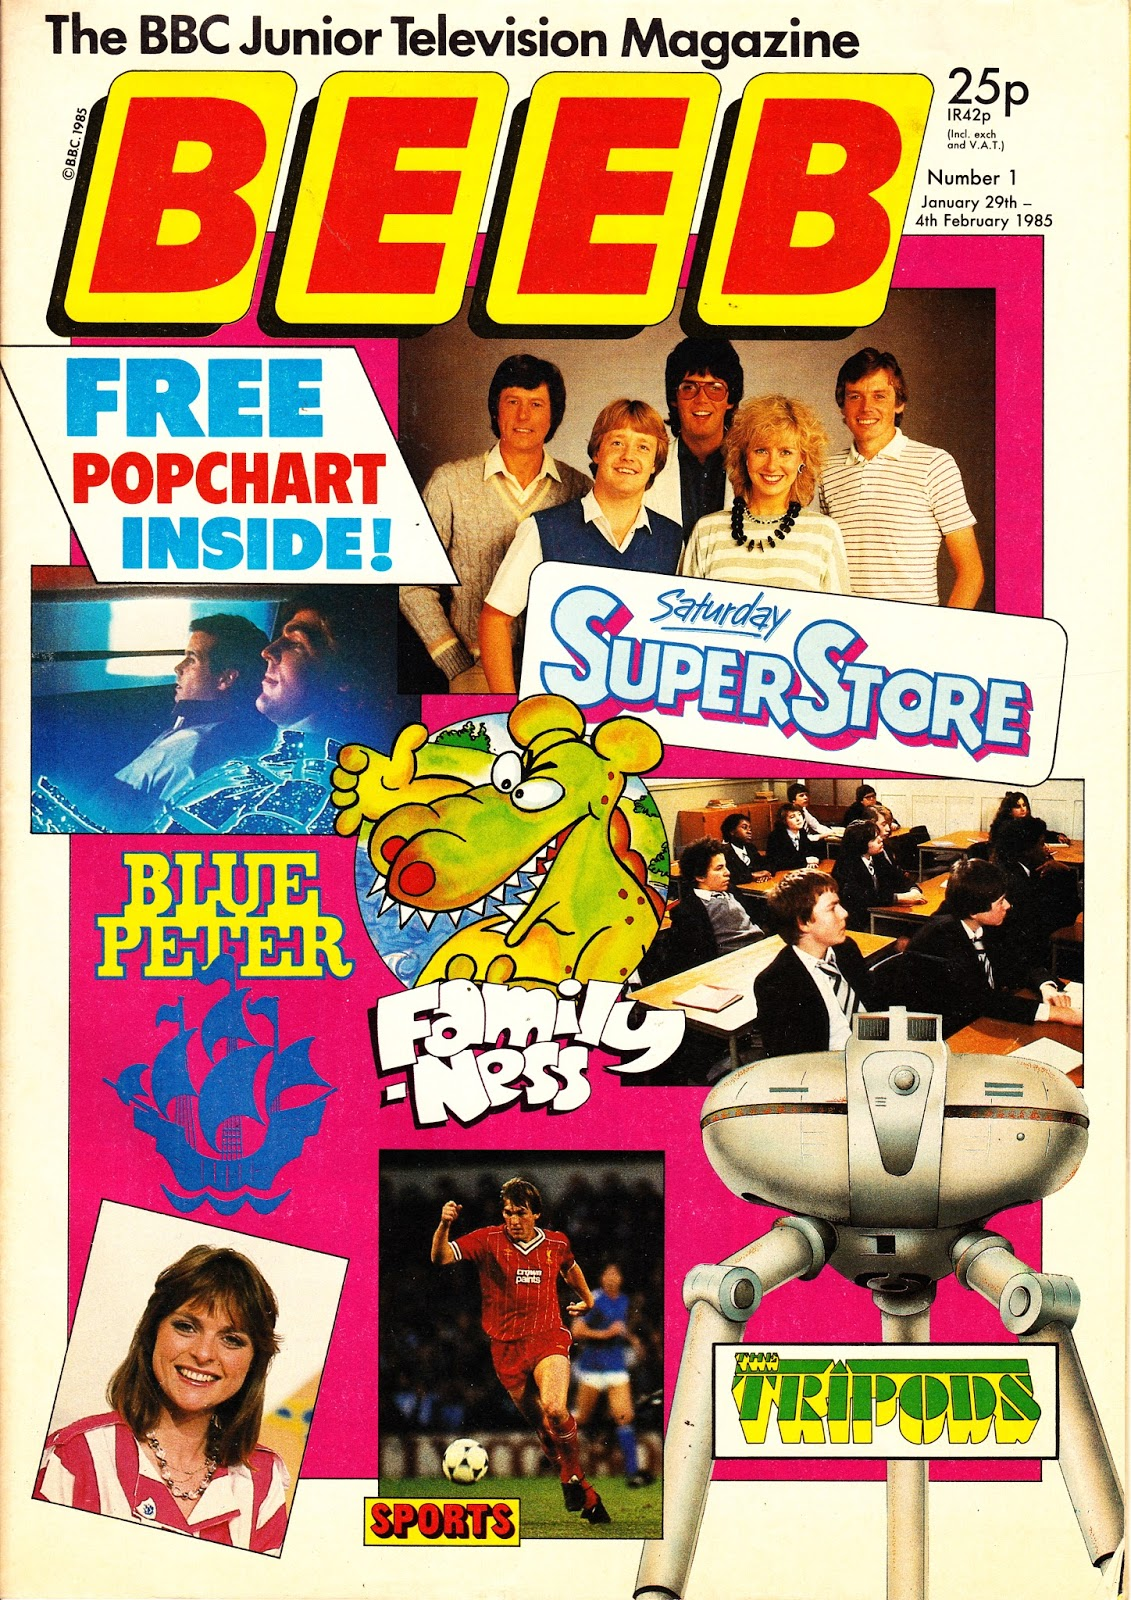 BEEB Magazine, as discussed by Tim Worthington and James Gent in Looks Unfamiliar.